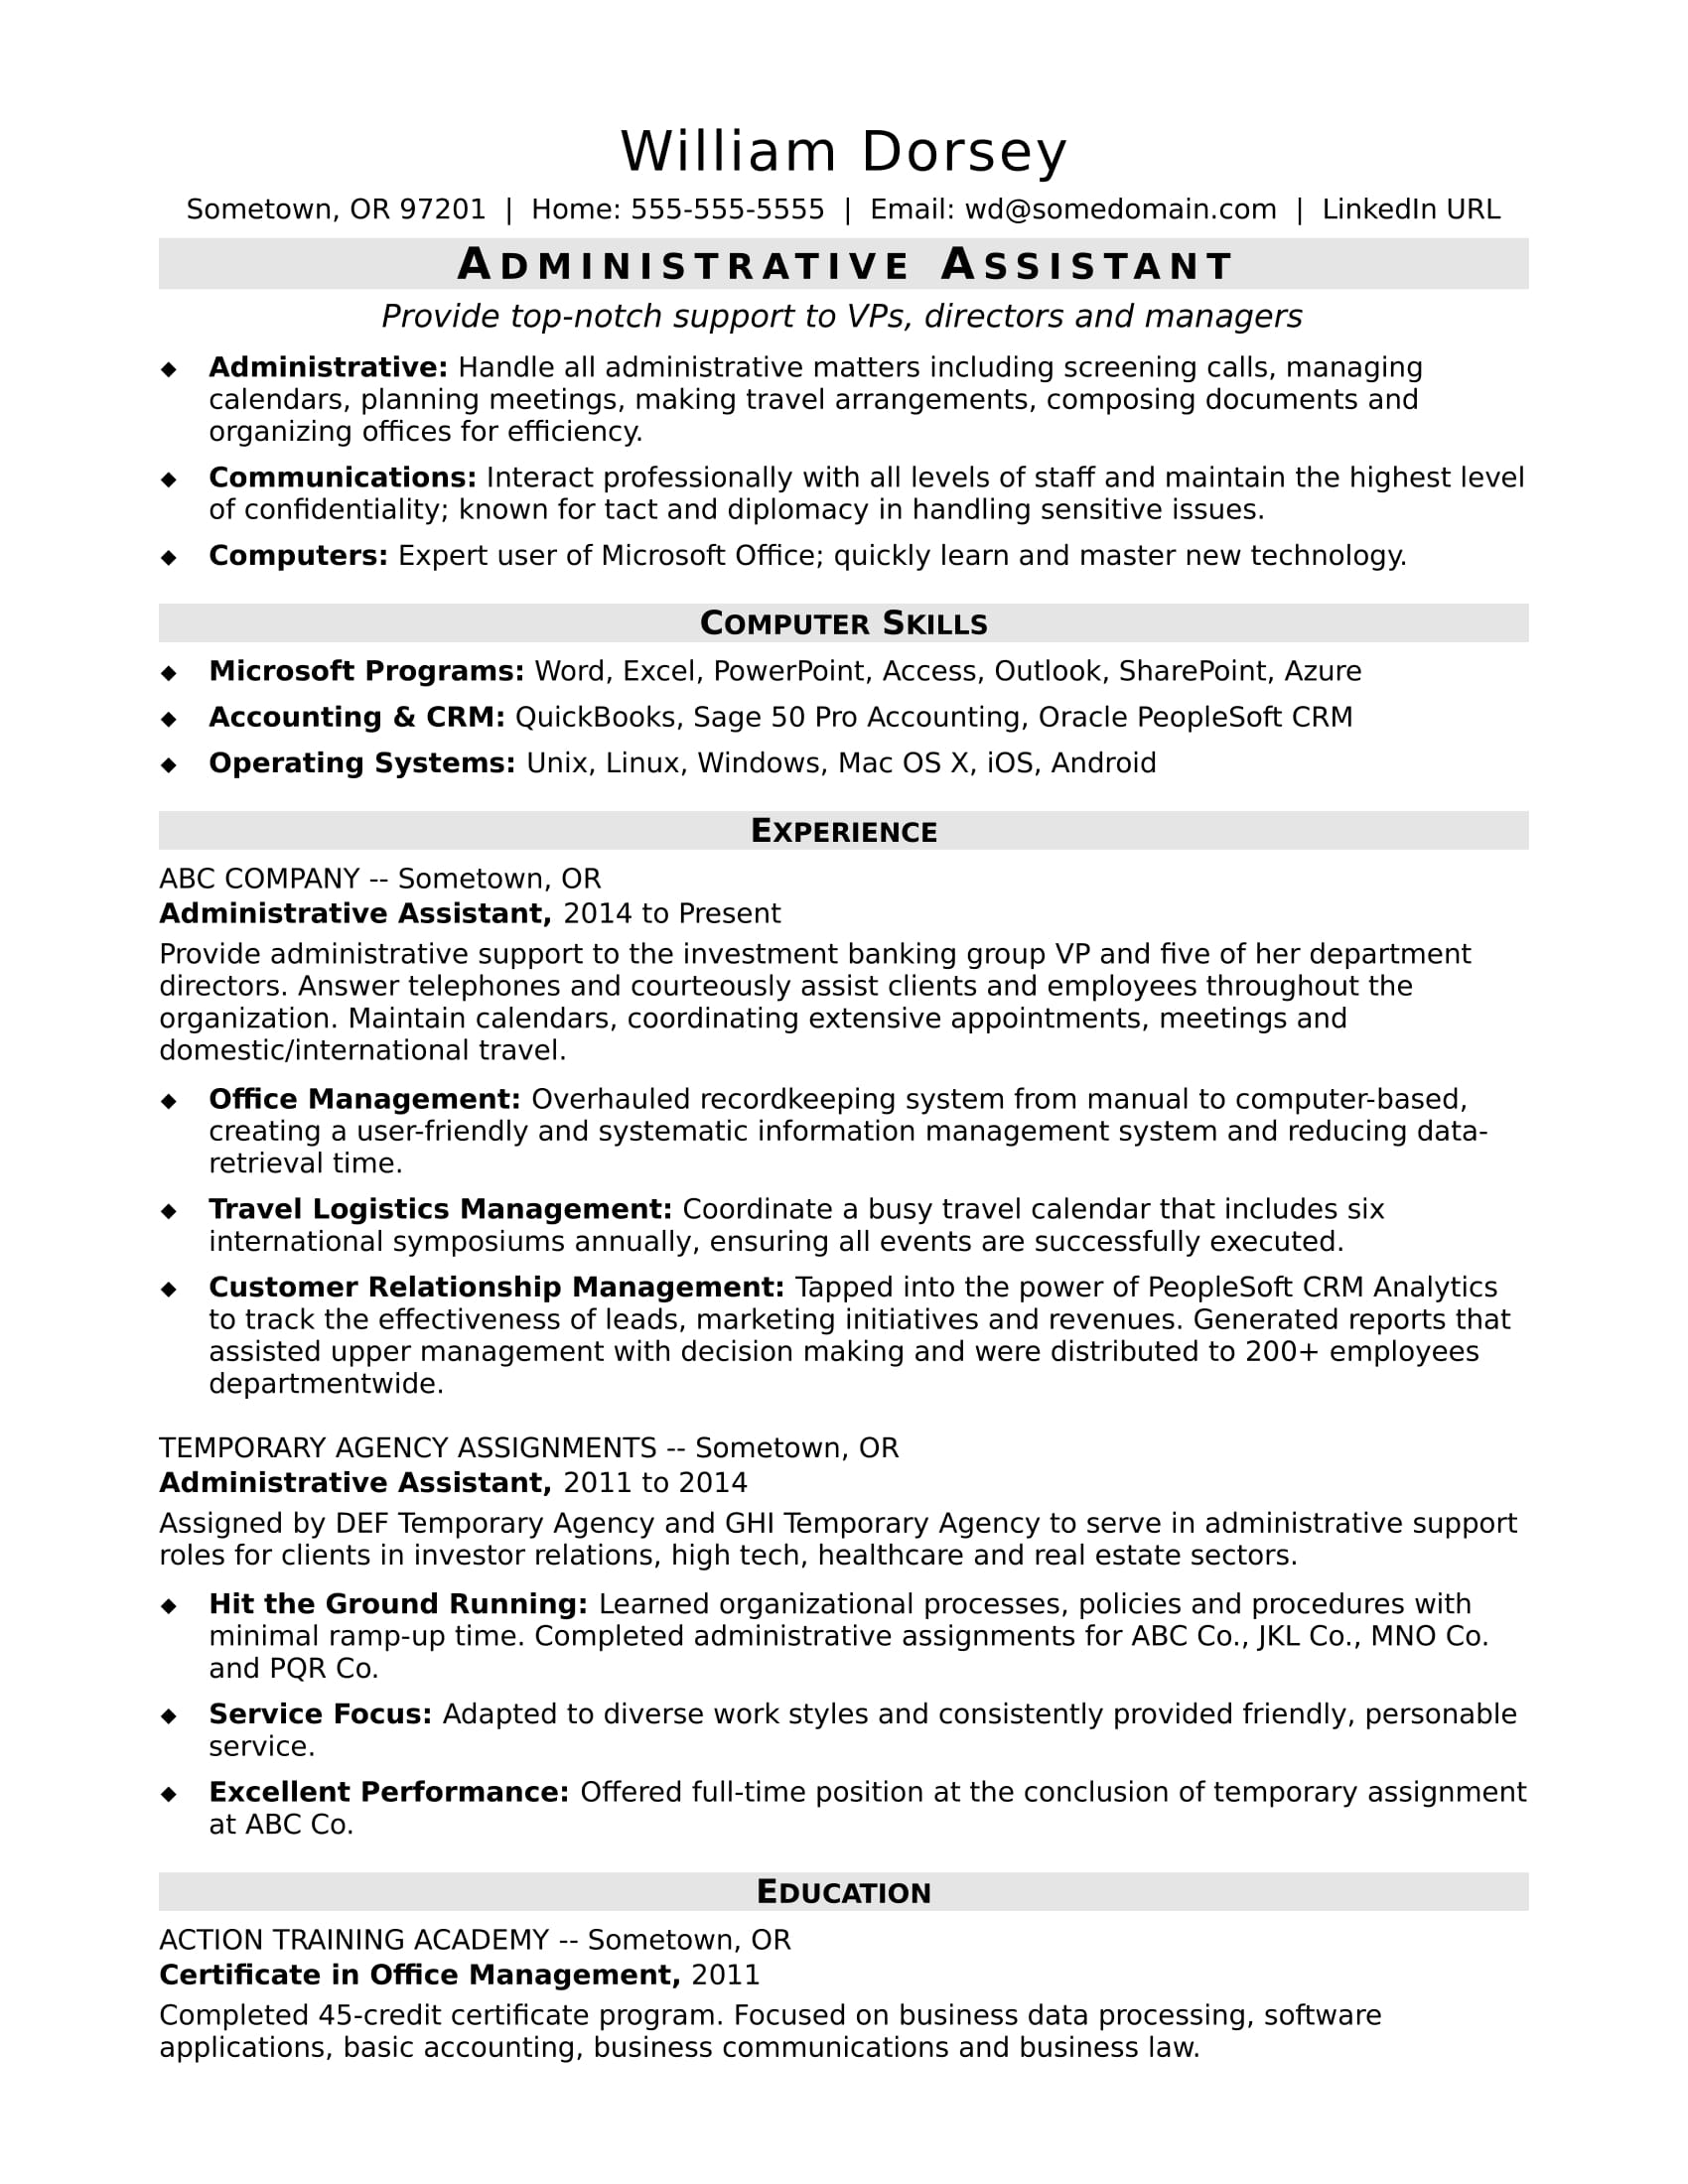 midlevel administrative assistant resume sample monster describing document review on Resume Describing Document Review On Resume